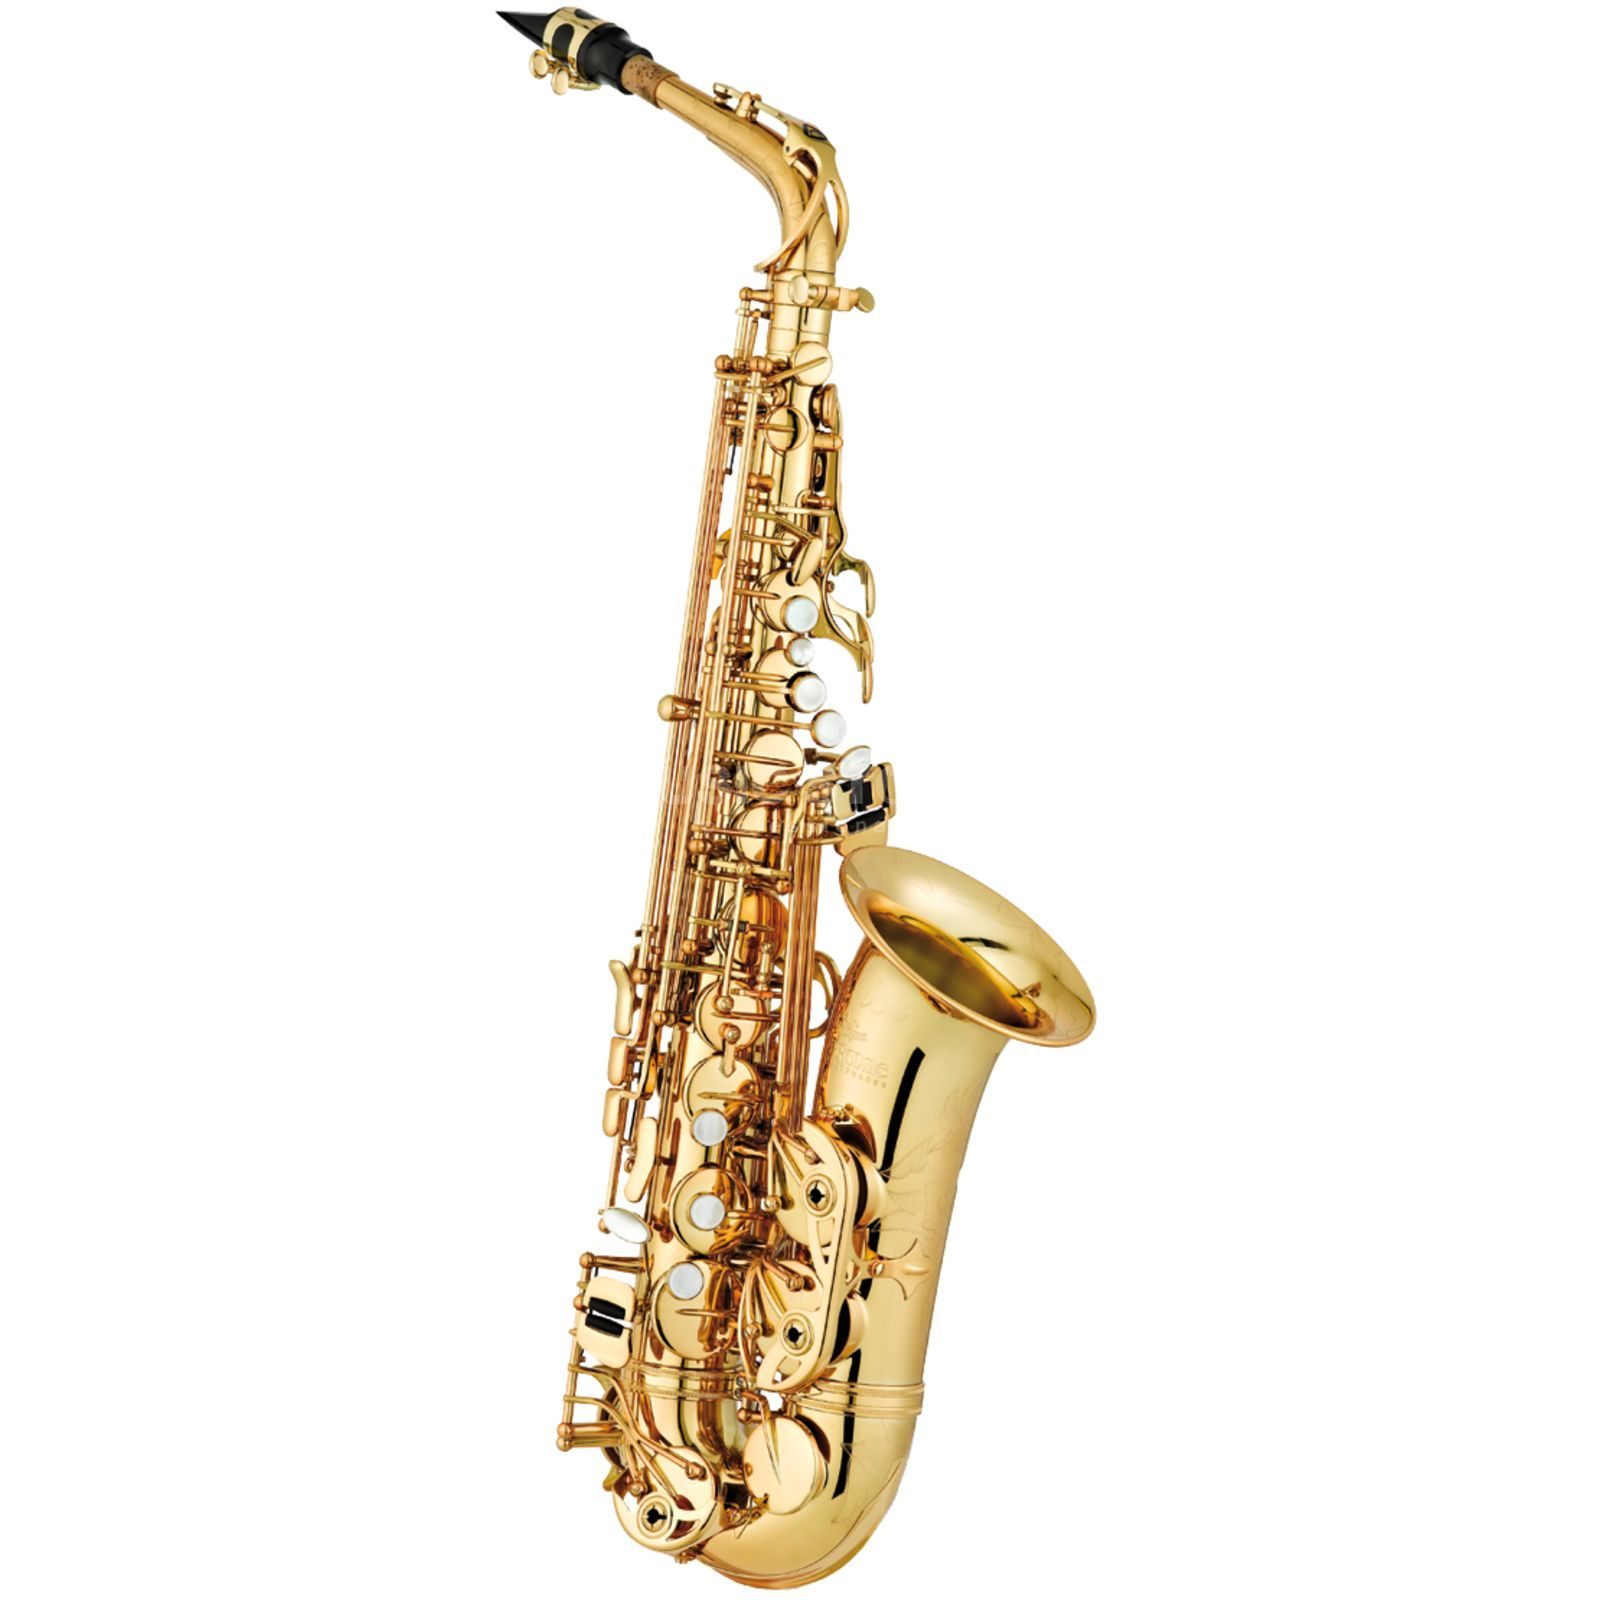 Antigua AS6200VLQ-GH Alt Sax Goldlack Product Image